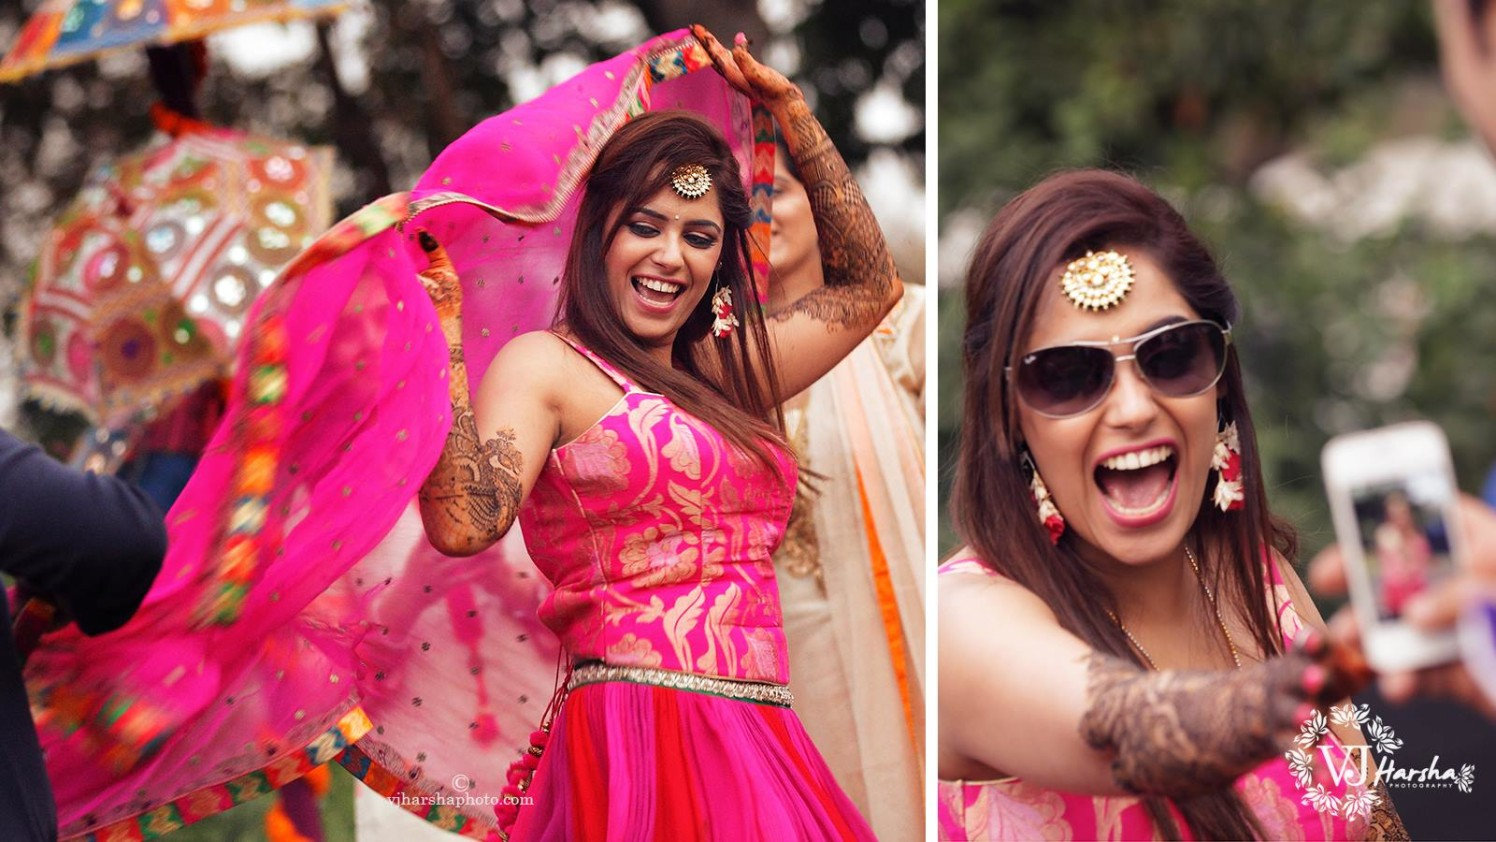 Candid Pictures of The Energetic Bride by Vjharsha Photography Wedding-photography | Weddings Photos & Ideas